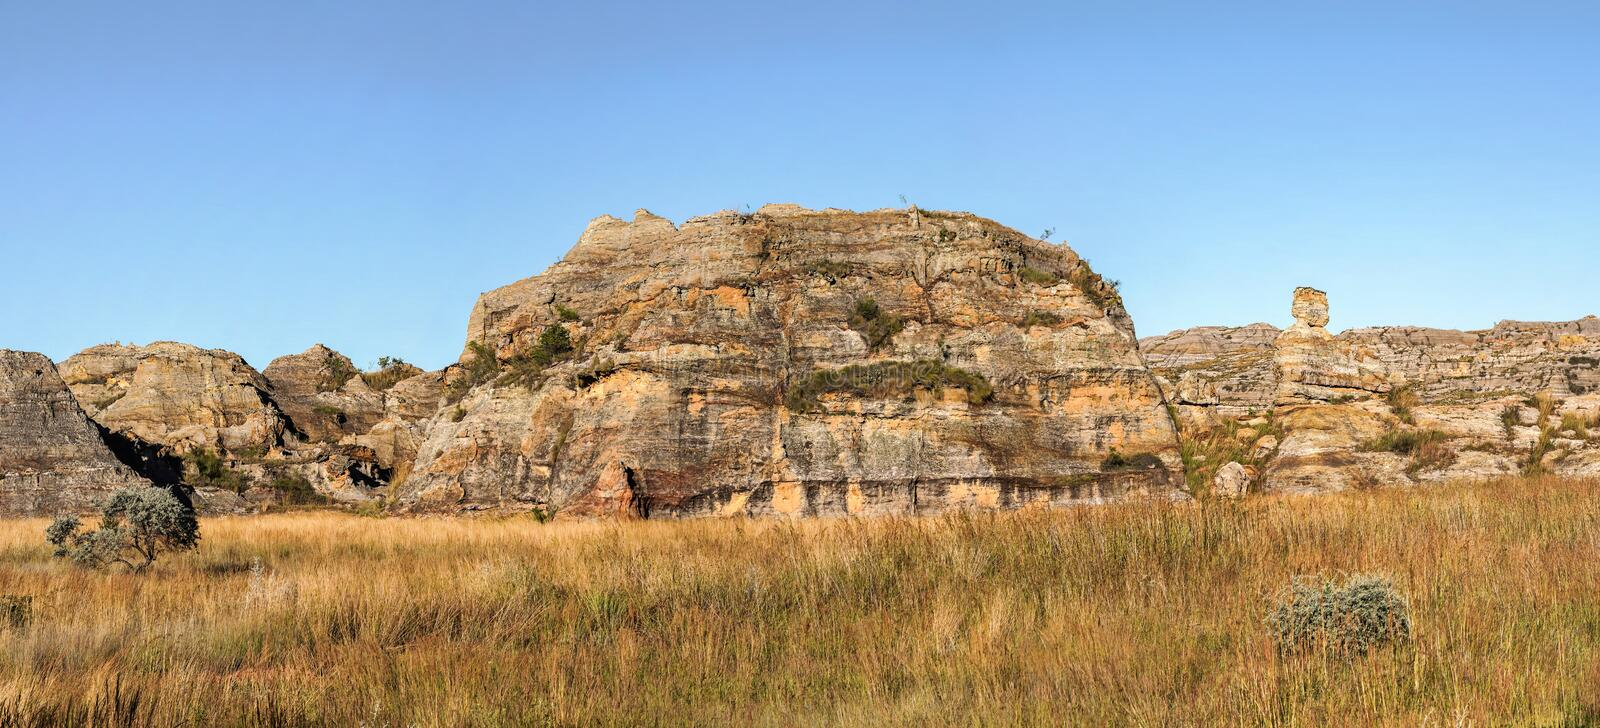 Panorama shot - rocky terrain at Isalo national park Madagscar, rock formation known as Lady Queen of Isalo also royalty free stock photography